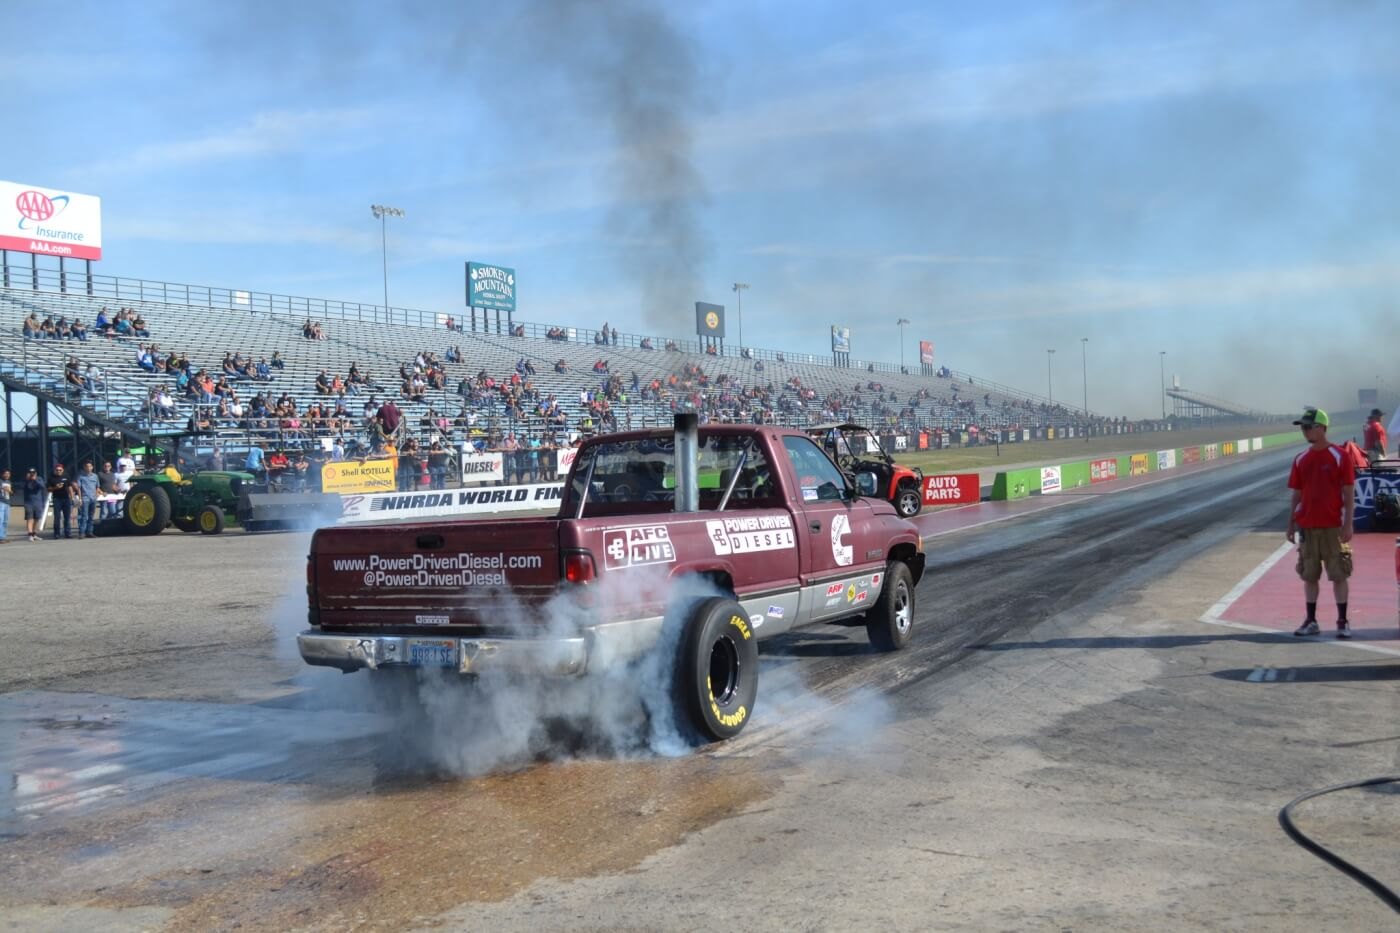 """Two wheel drive diesels on slicks could be seen everywhere this year at the World Finals. Trucks like Power Driven Diesel's 10-second """"Junker Drag Truck"""" wowed the crowd with big burnouts and quick elapsed times."""